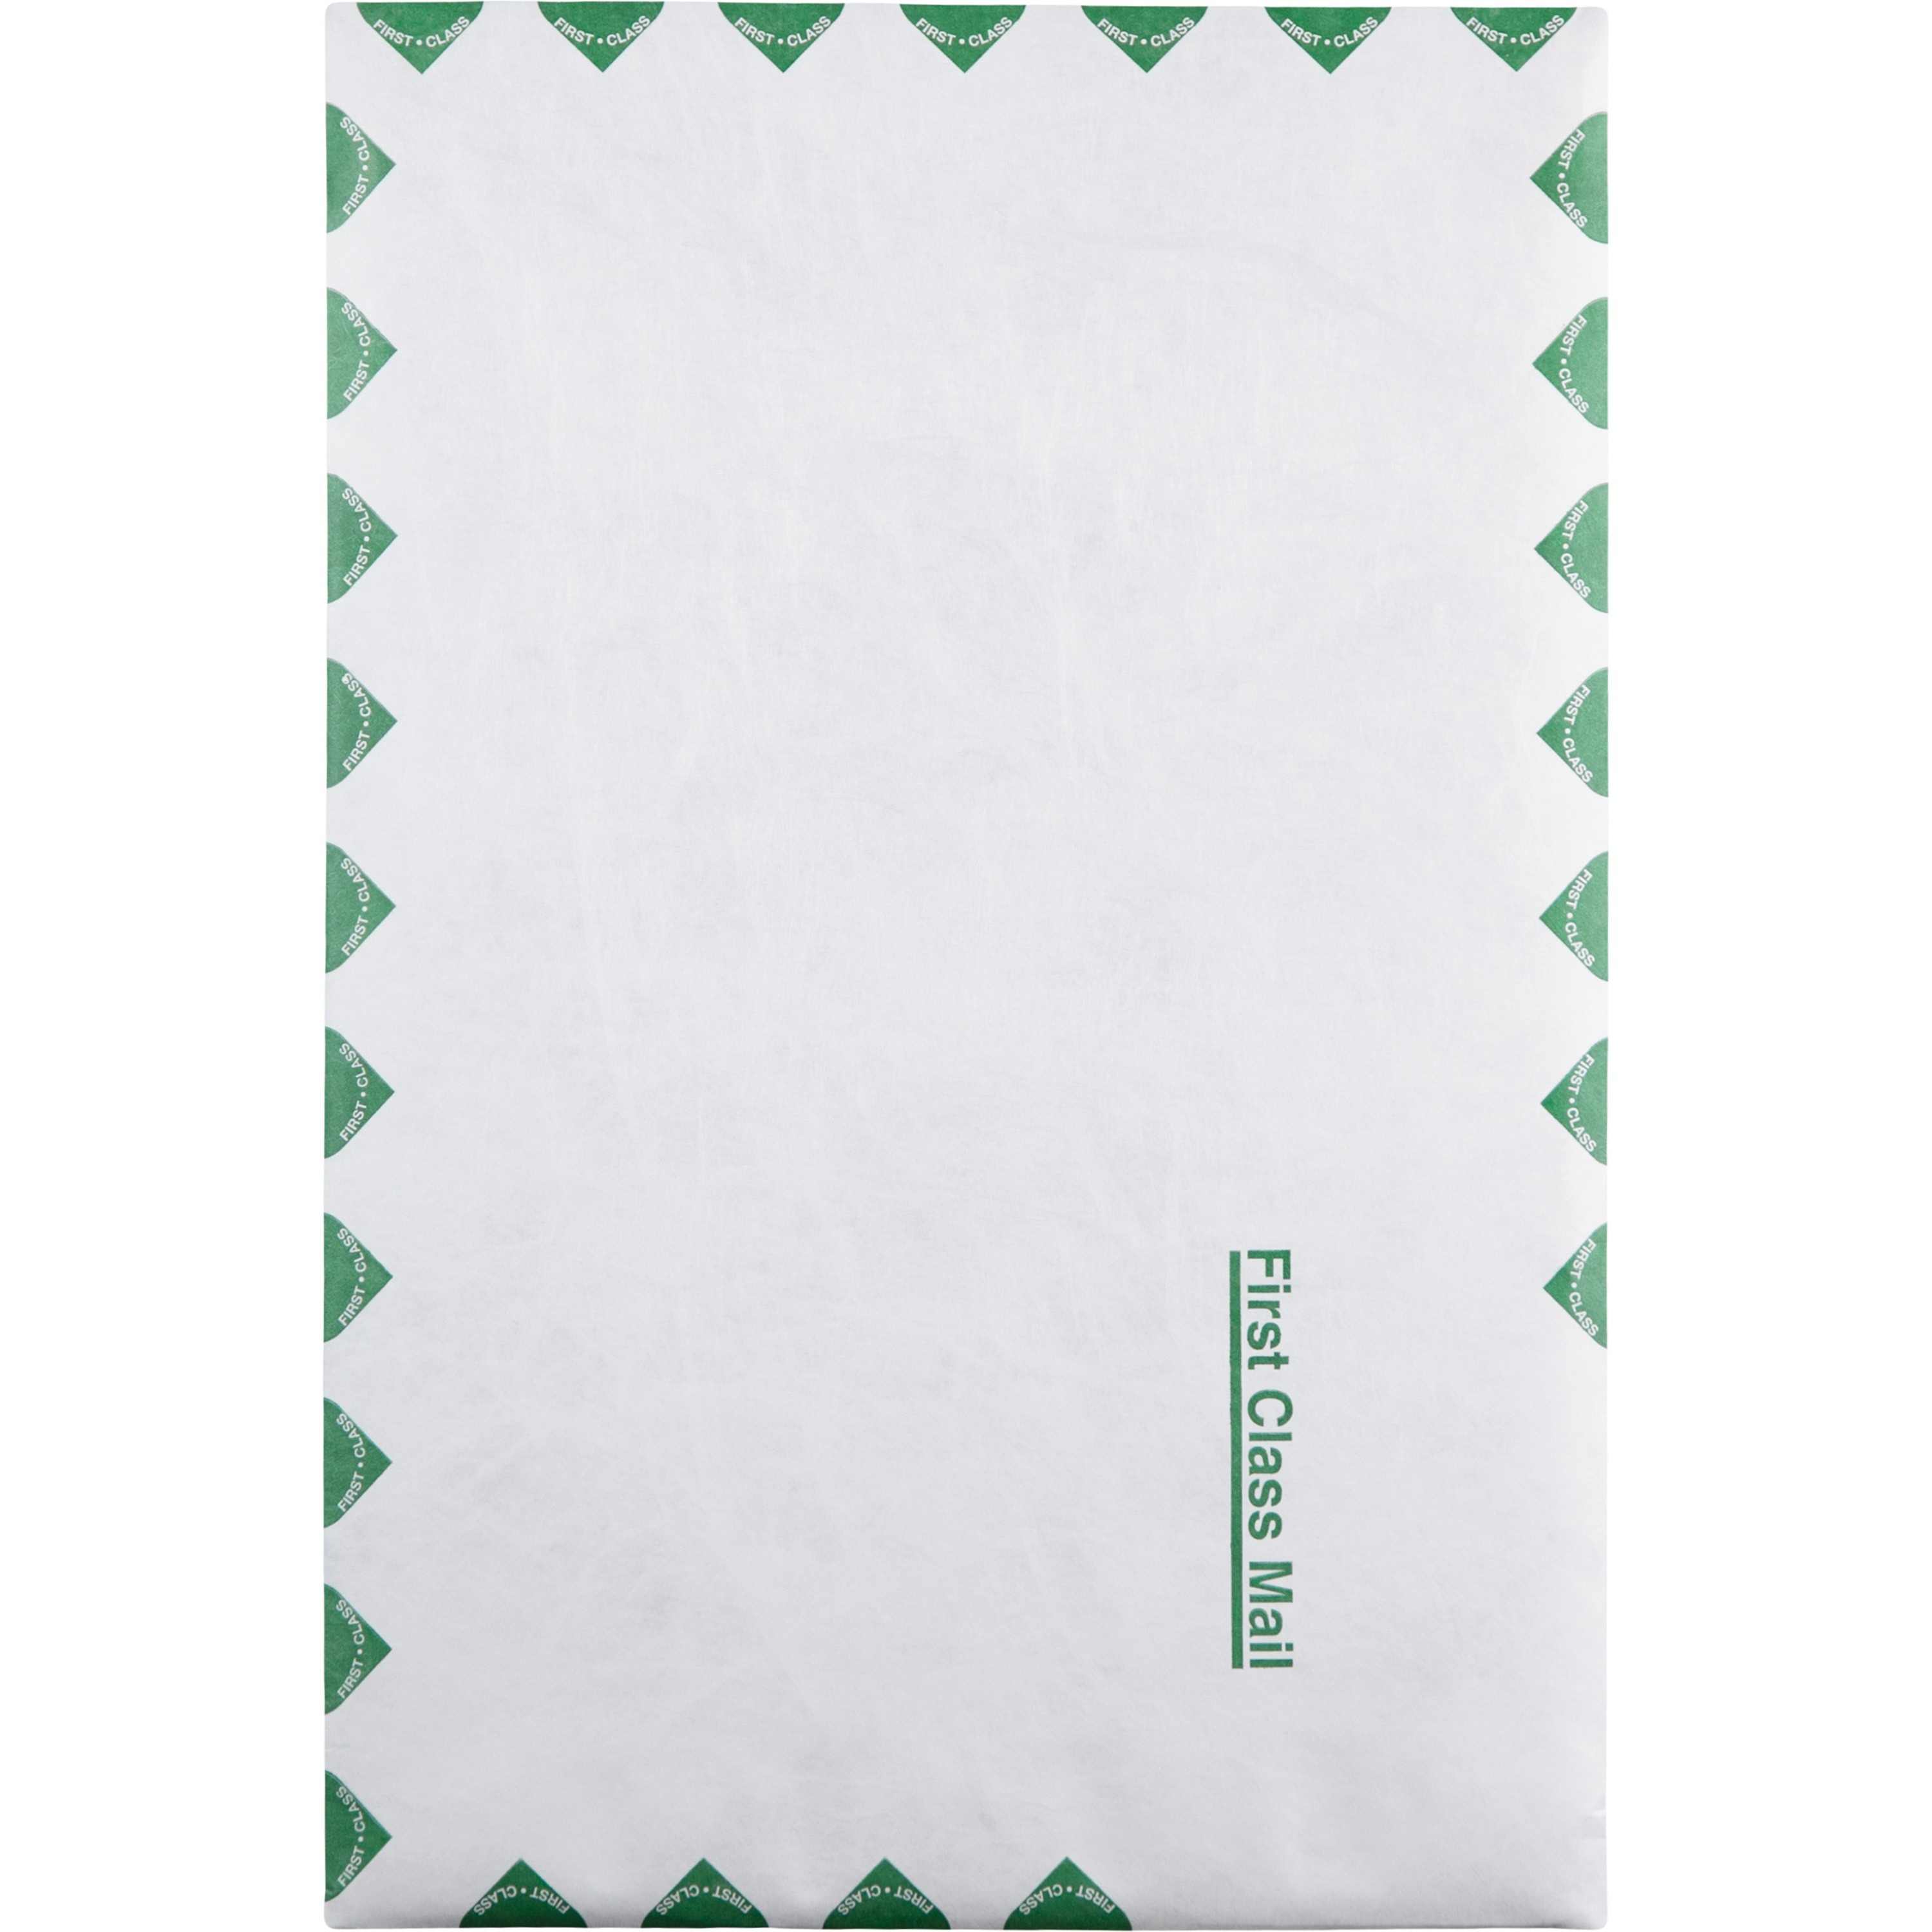 Quality Park Survivor First Class Envelopes